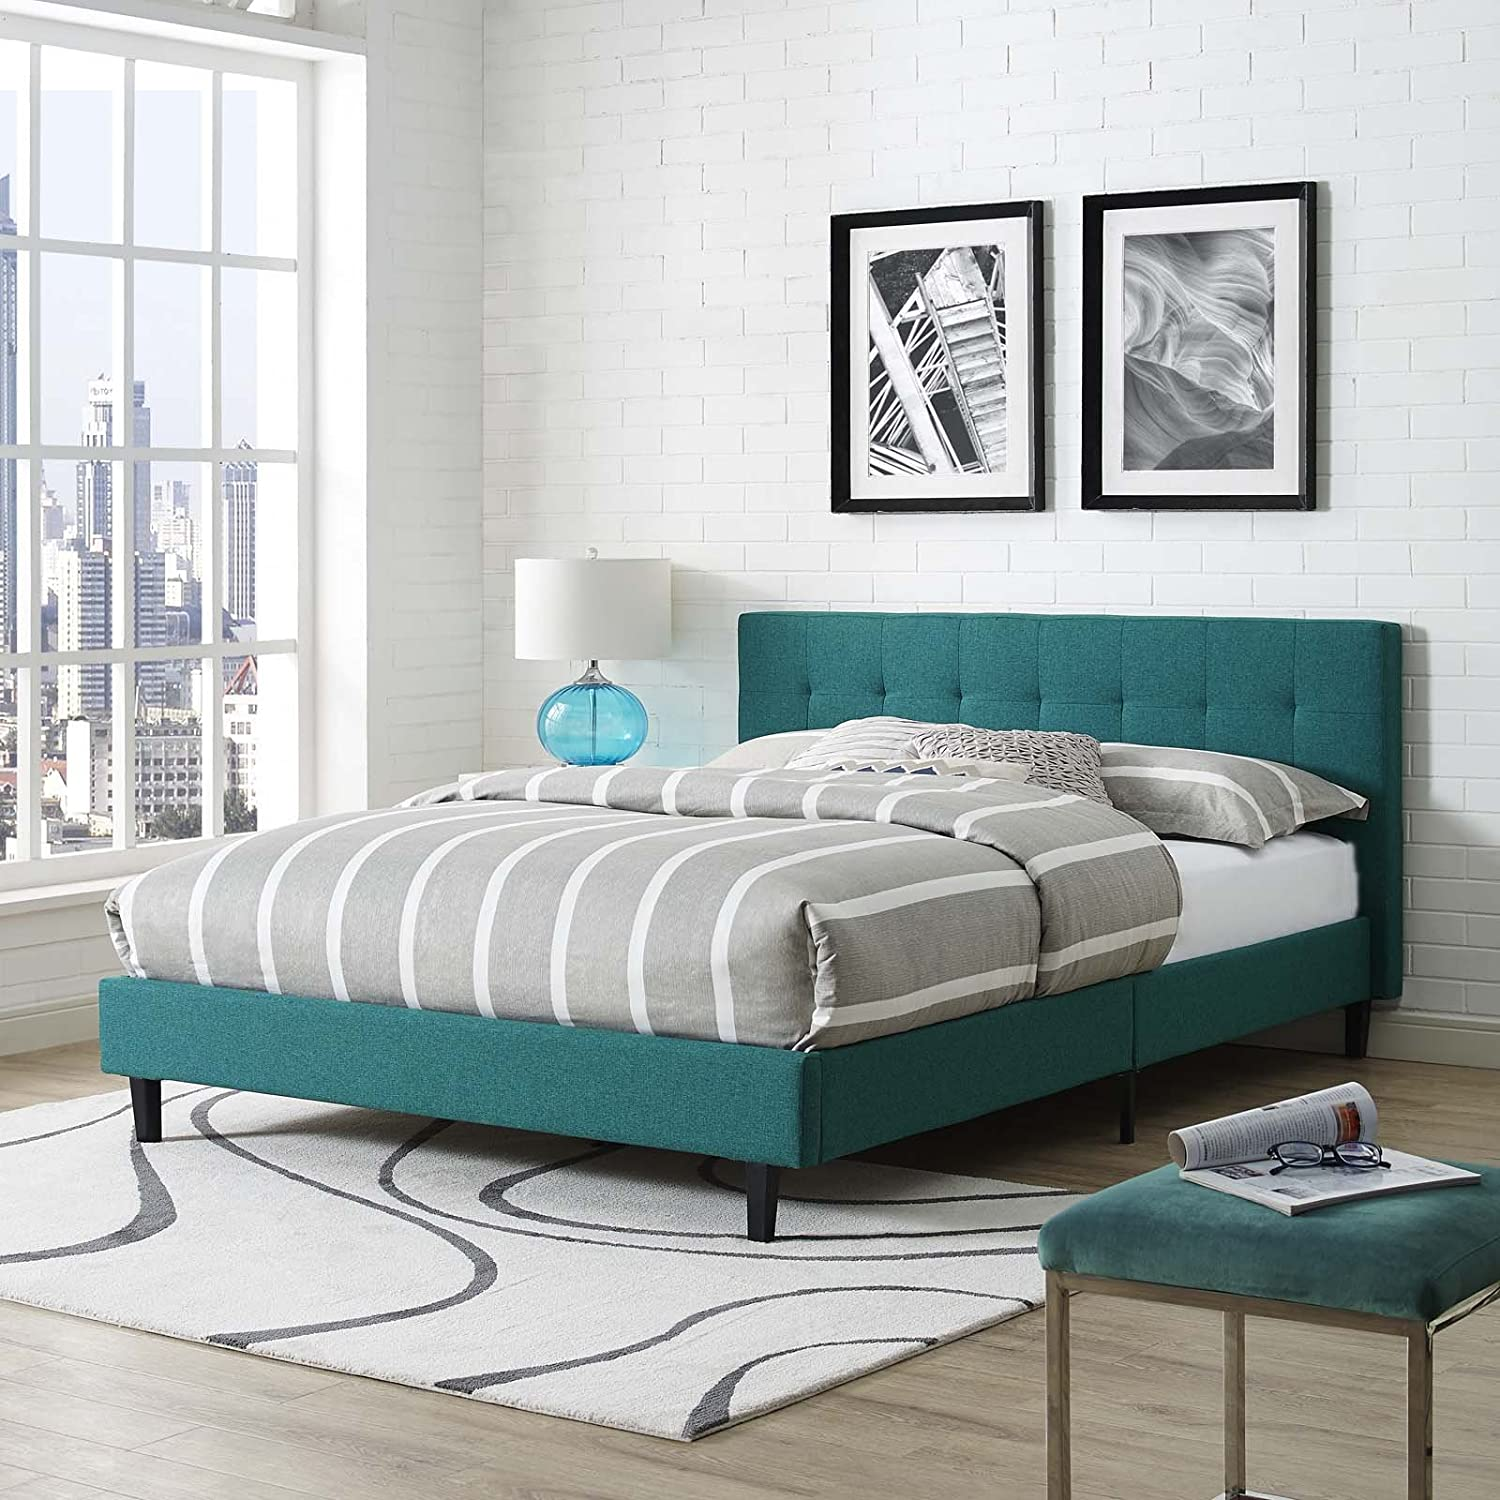 Modway Linnea Fabric Bed, Queen, Teal